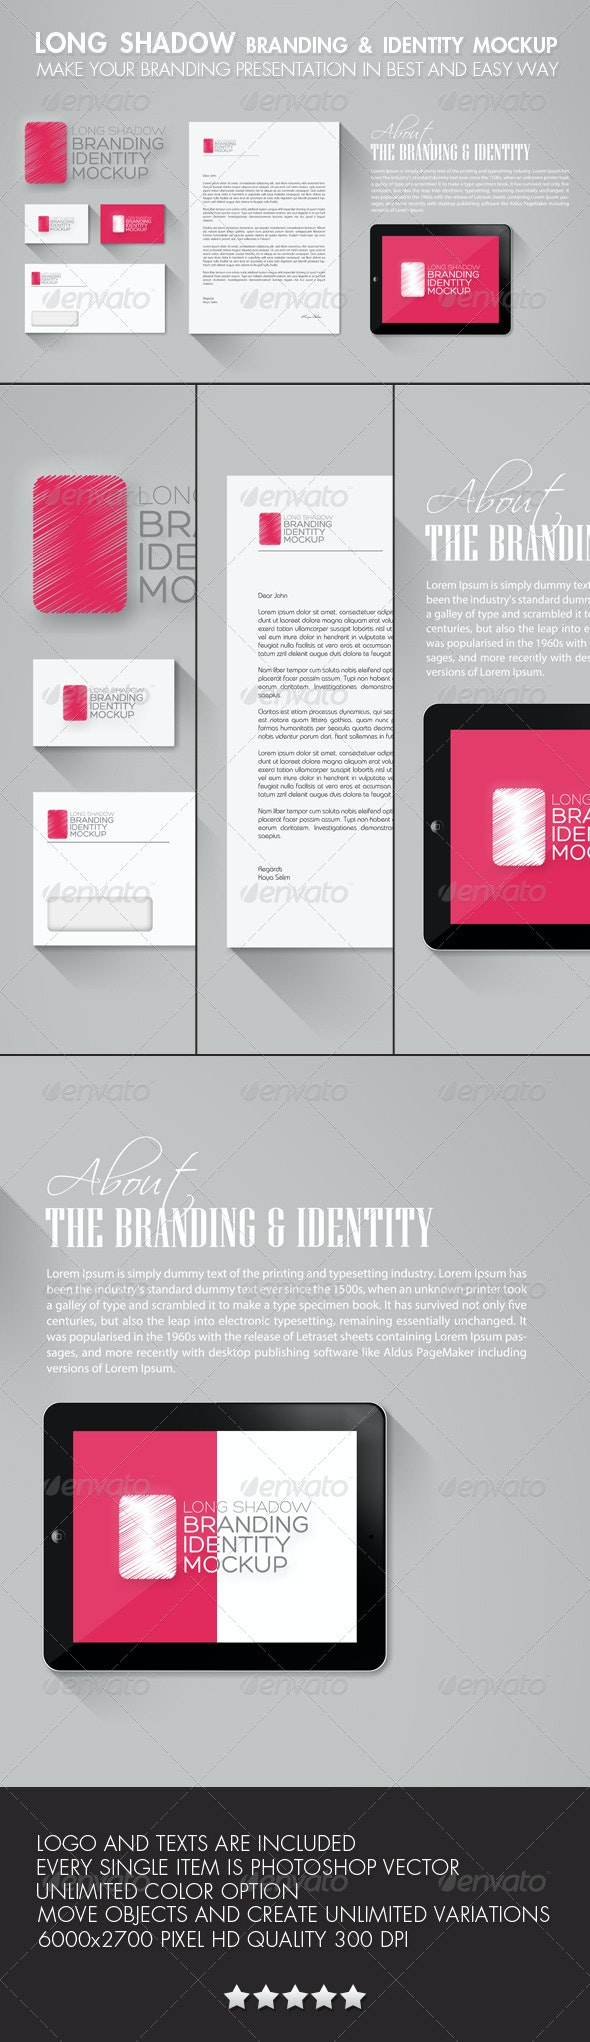 Long Shadow Branding & Identity Mockup - Stationery Print